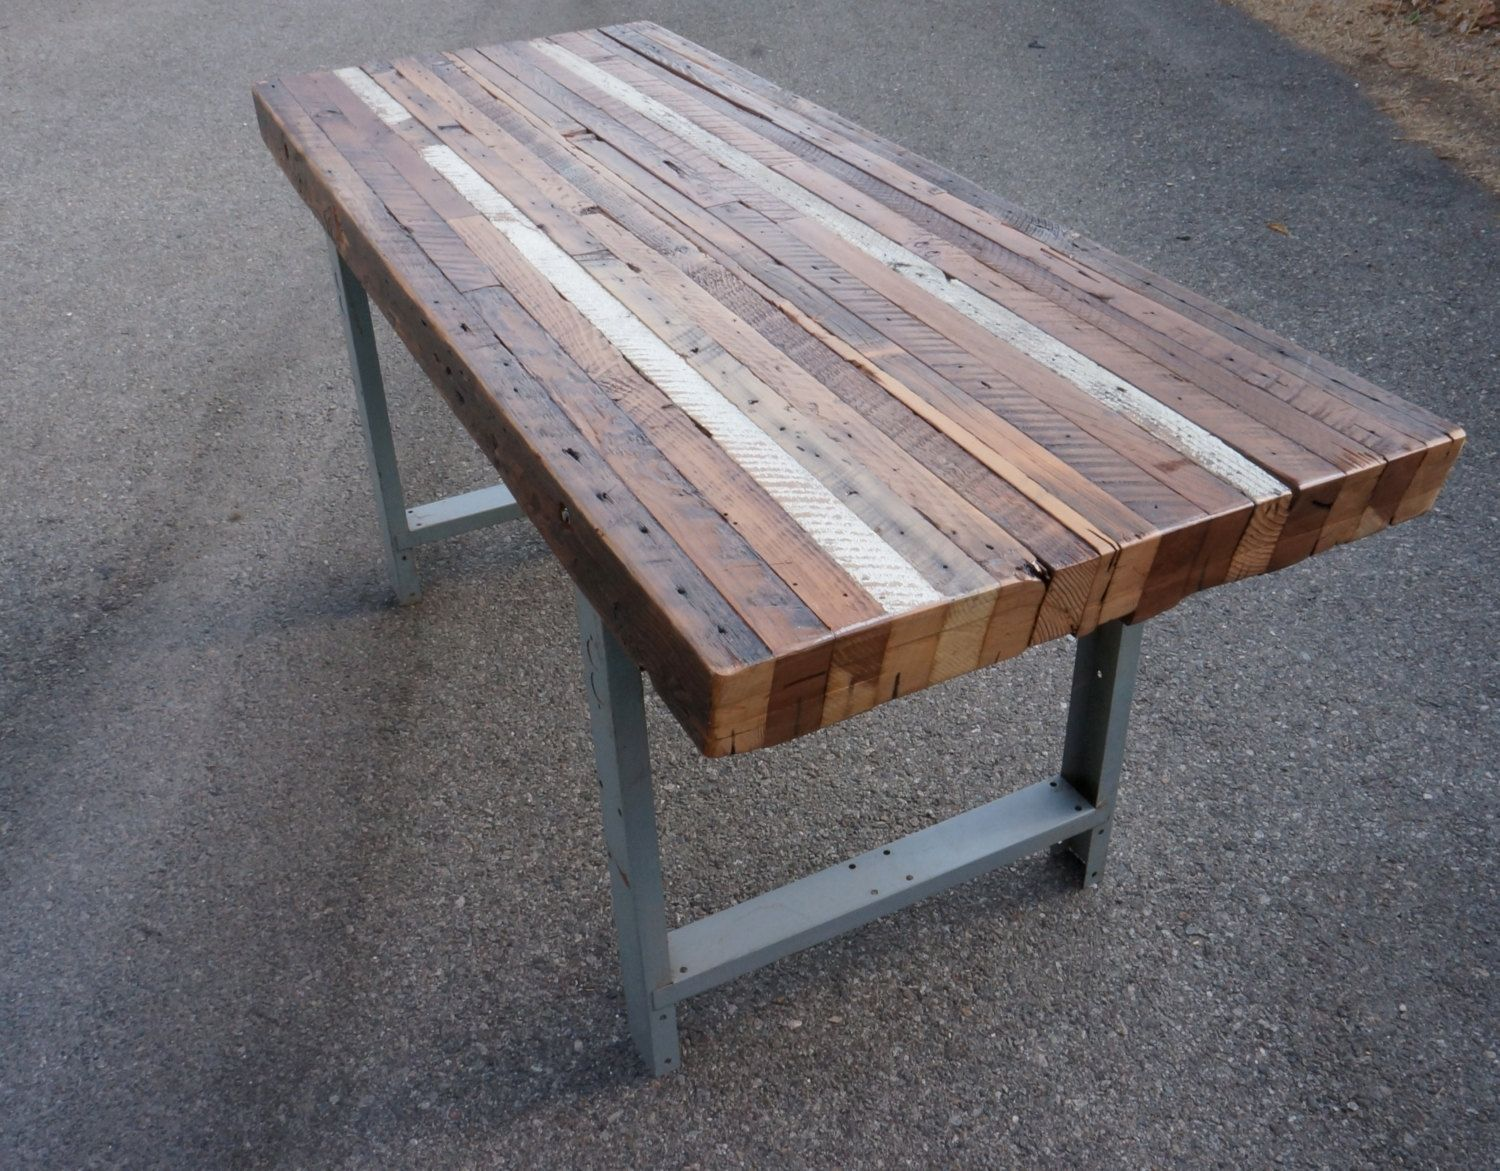 Handmade custom outdoor indoor rustic industrial reclaimed wood dining table coffee table by Rustic wooden coffee tables